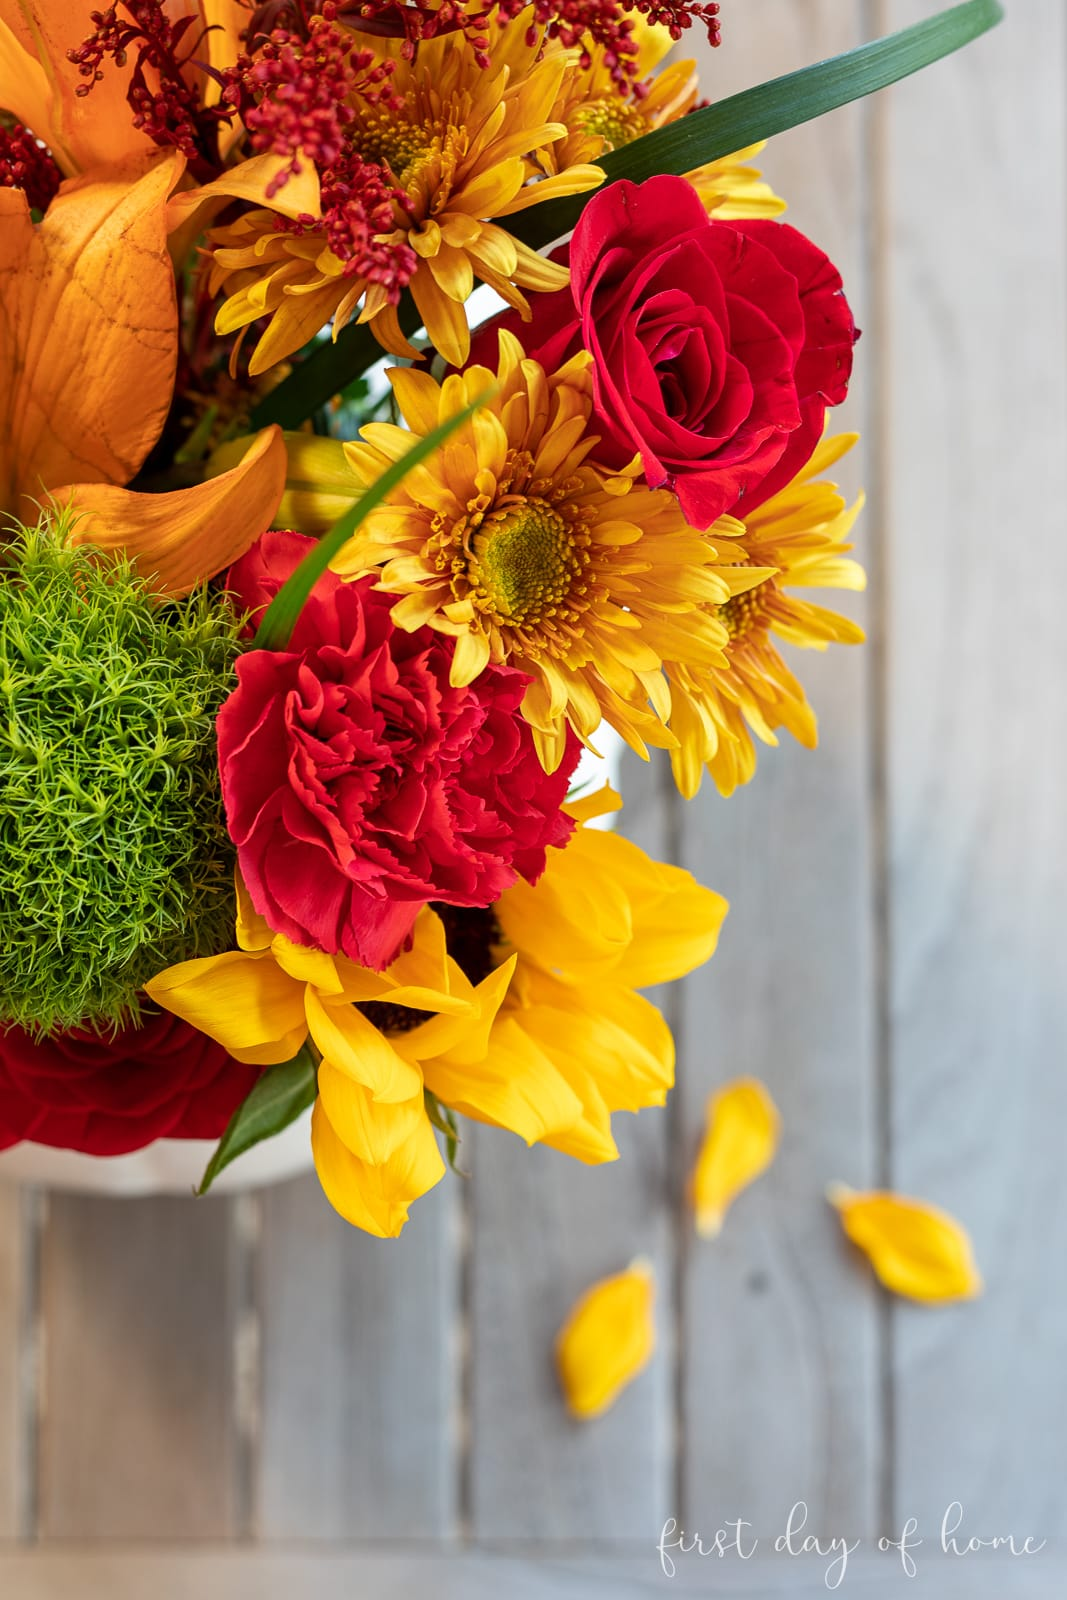 Bird's eye view of pumpkin flower arrangement with roses, carnations, sunflowers and other stems